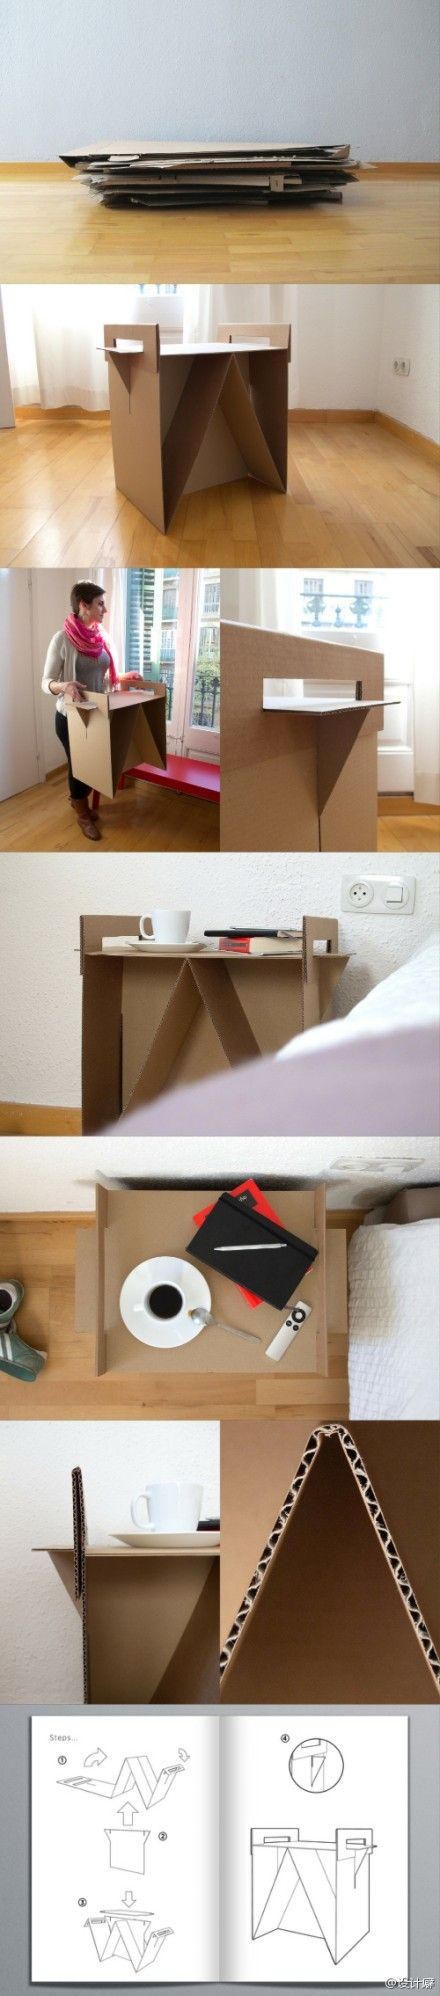 23 best chair images on Pinterest | Chair design, Cardboard chair ...